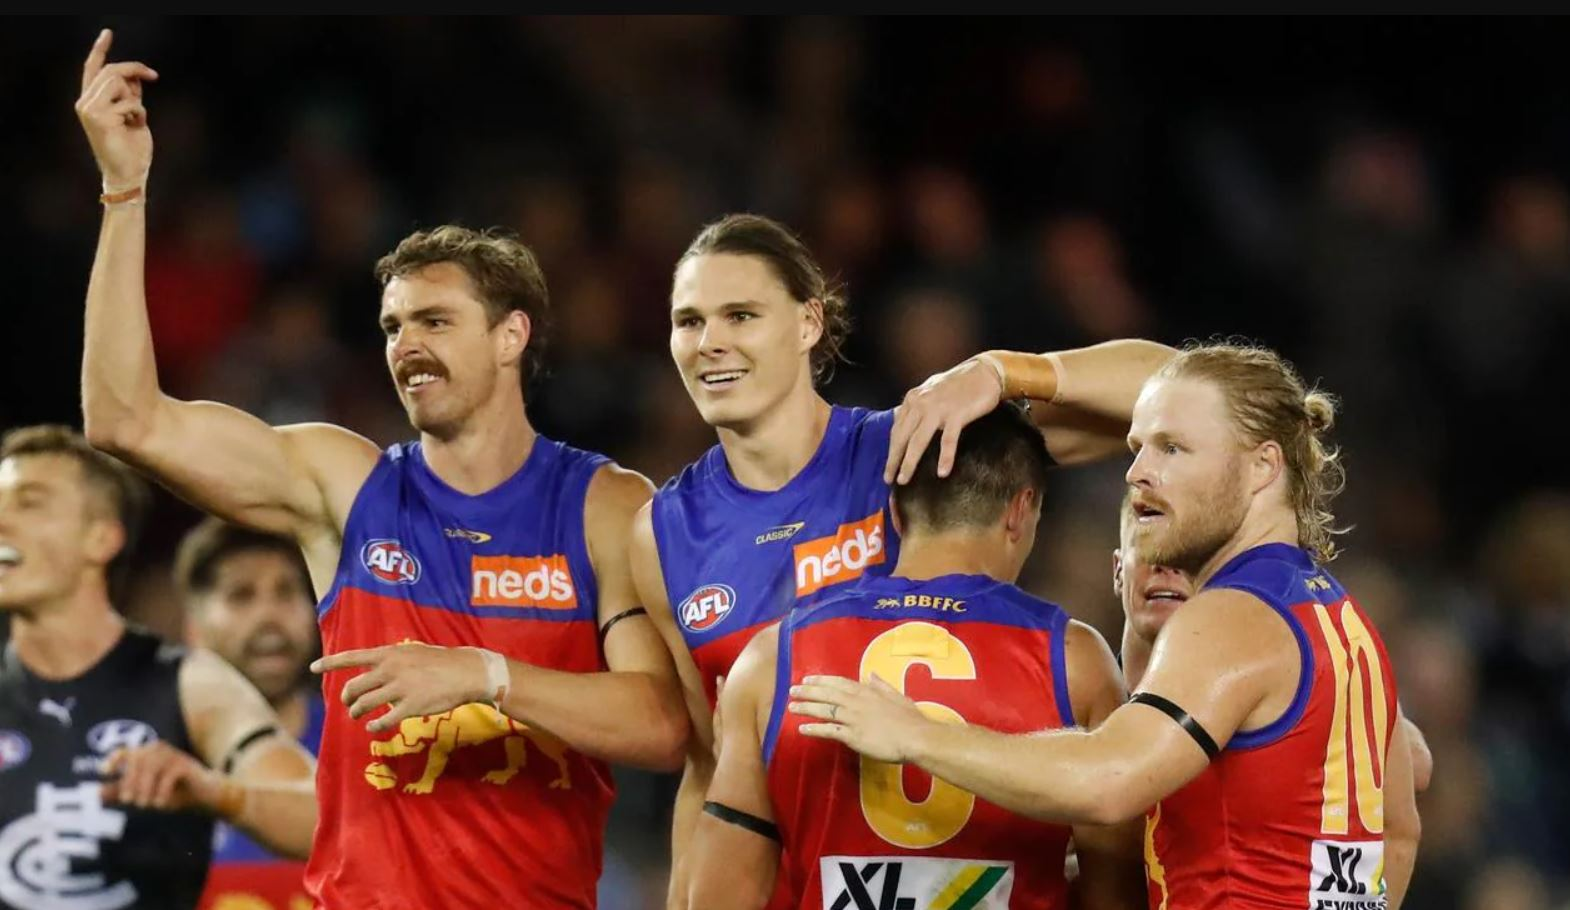 AFL 2021 Daily Fantasy Tips: Round 15 Lions v Cats